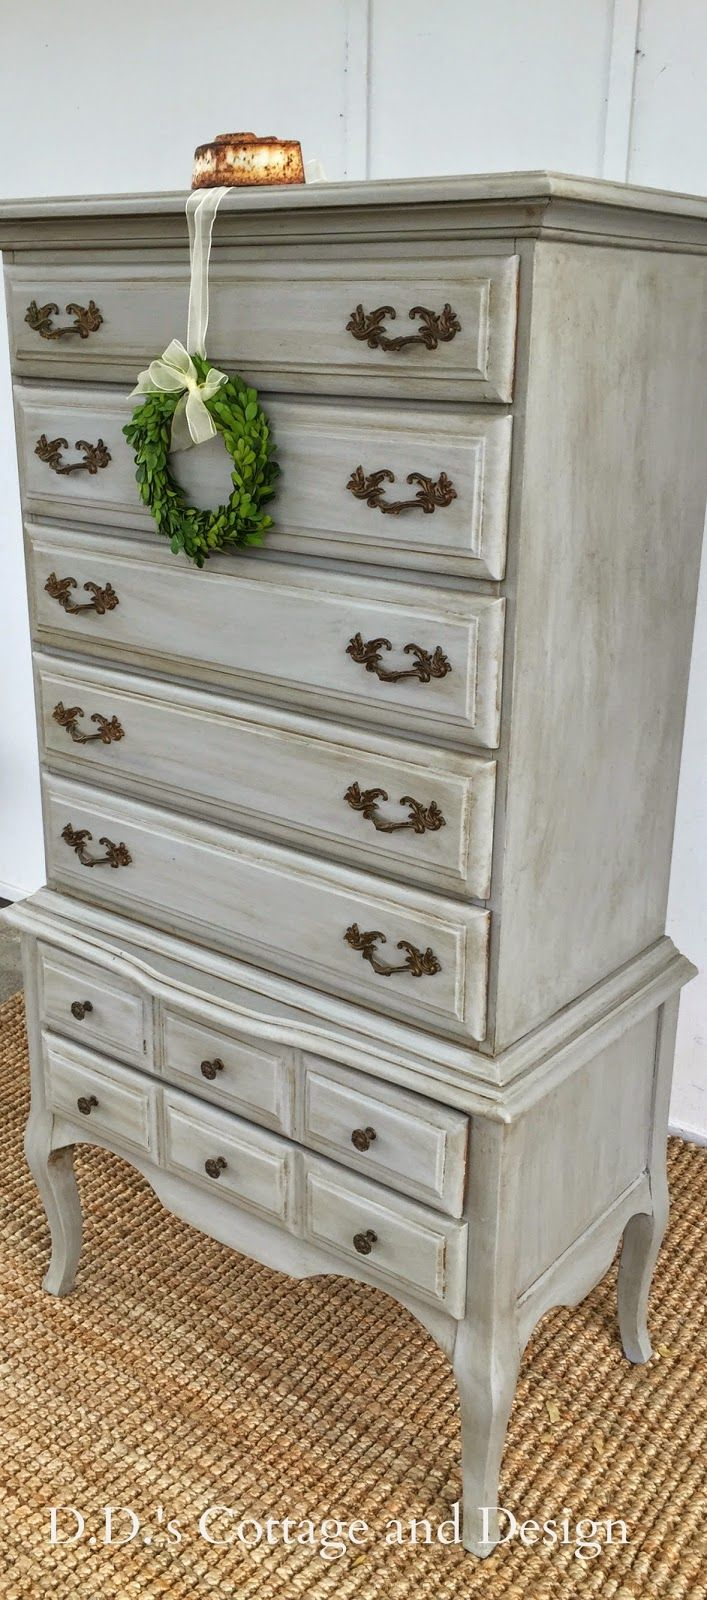 D.D.'s Cottage and Design: Grey French Provincial Chest on Chest